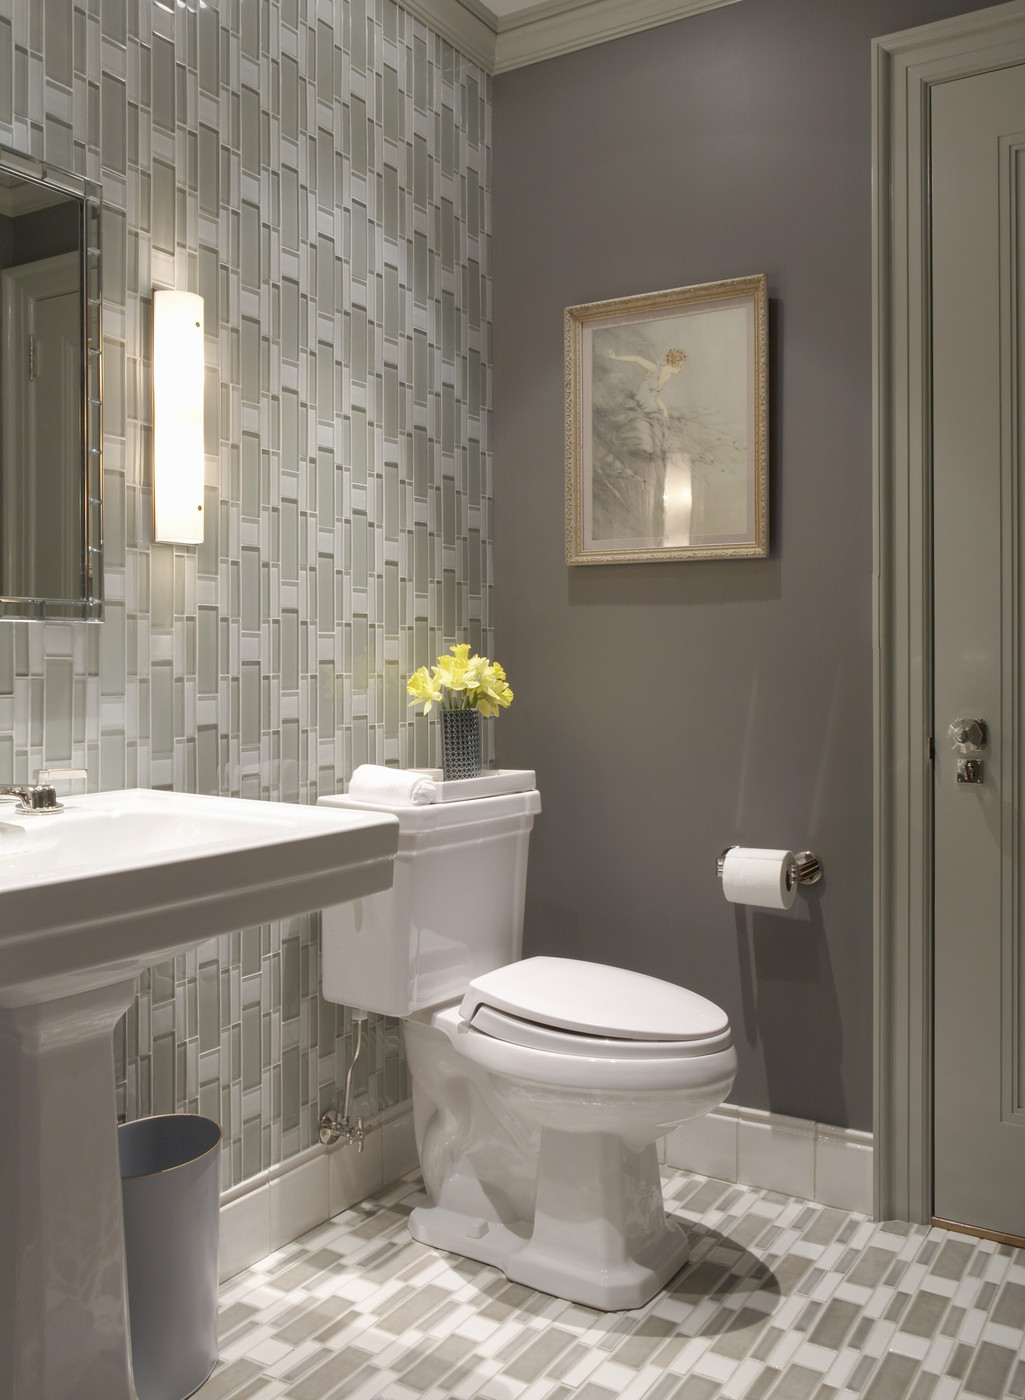 Bathroom Design Ideas Images How To Decorate With The Color Taupe